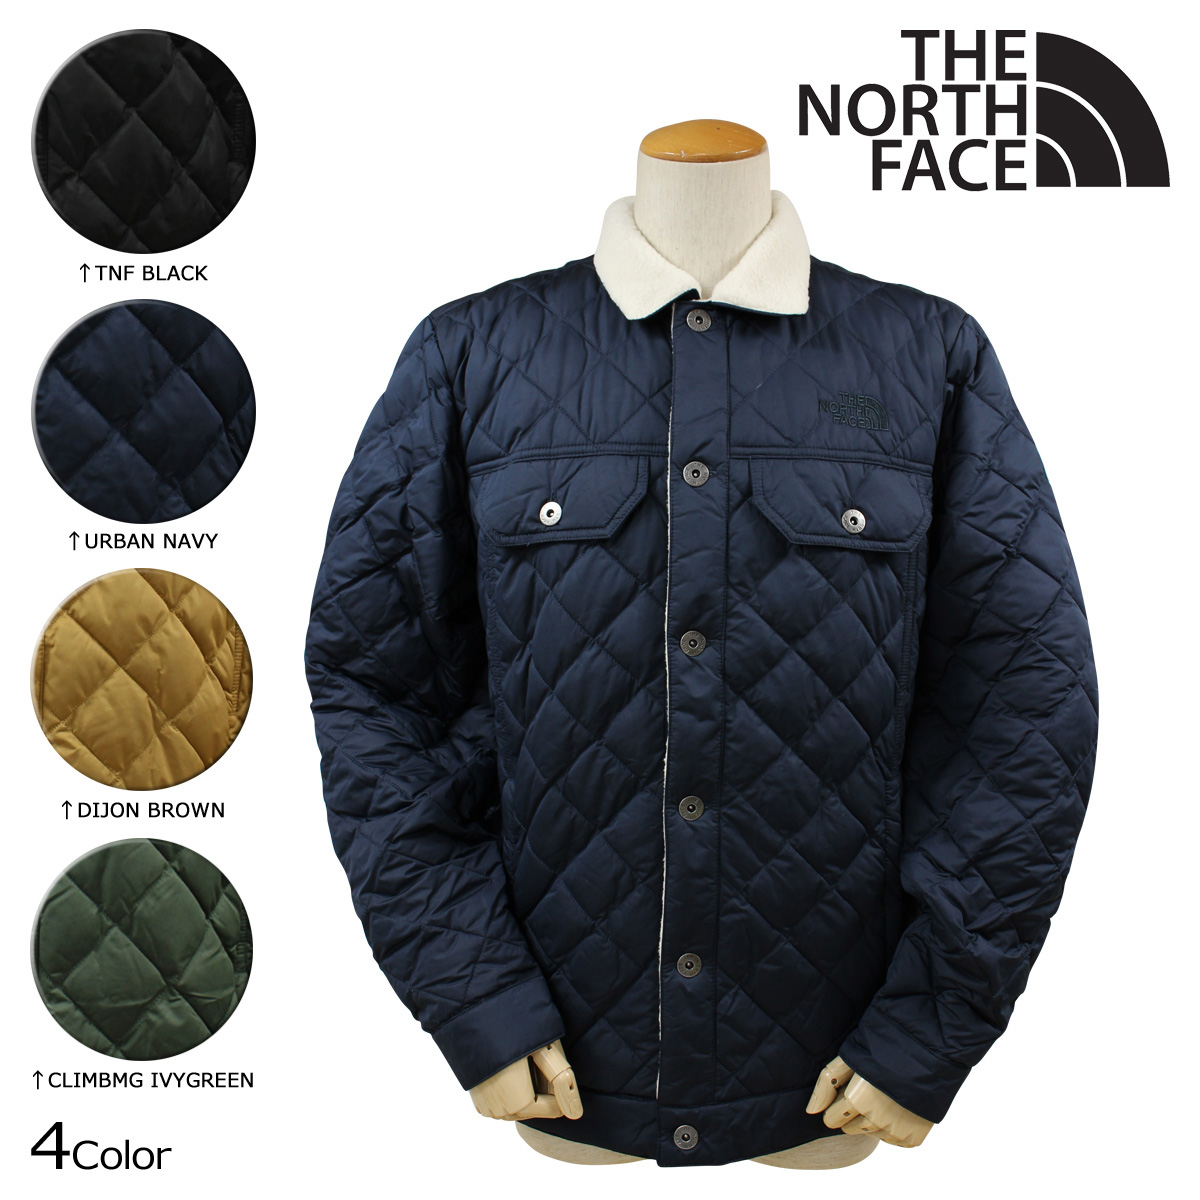 e420ed7e7 THE NORTH FACE North Face jacket shell jacket MEN'S SHERPA THERMOBALL  JACKET NF0A2TCA men